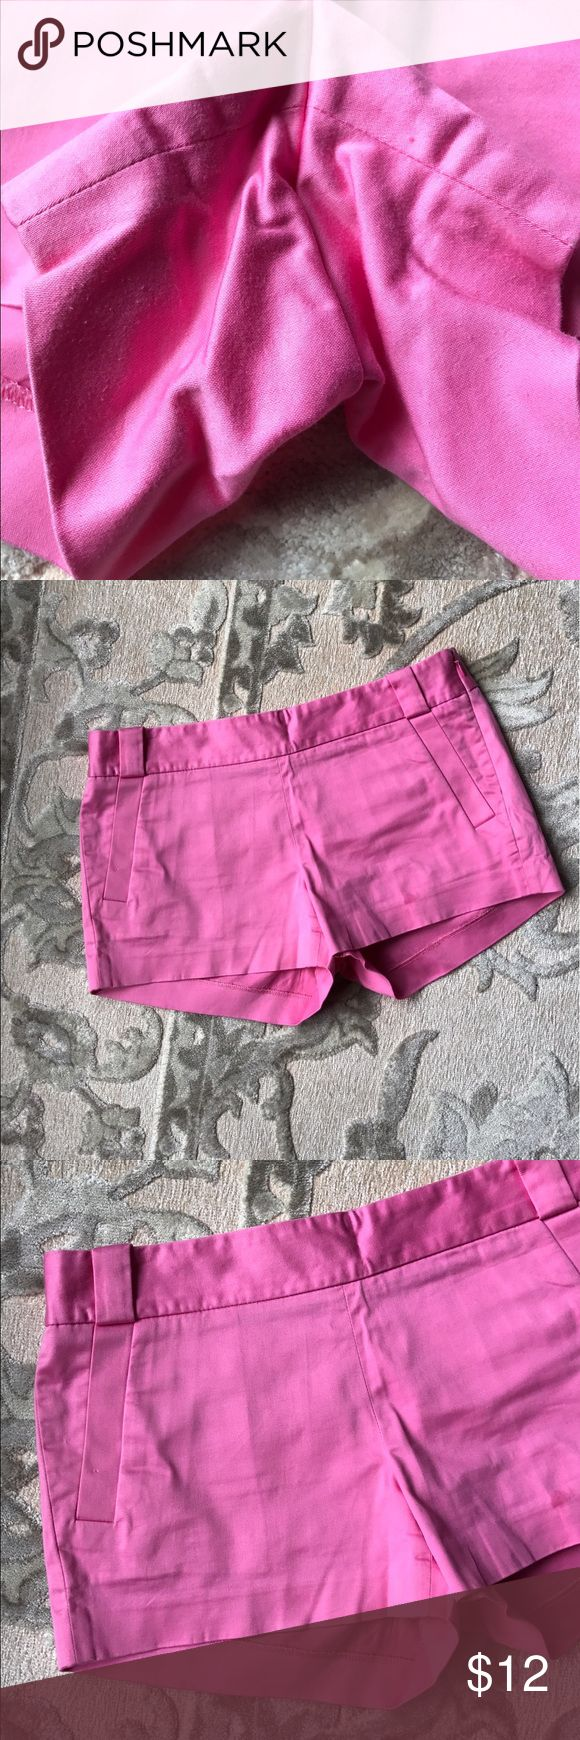 J. Crew Factory pink shorts summer vacation Good condition women's size 6 J.Crew factory shorts. Bubblegum pink color. Smoke-free pet free home. Measures 31 inch waist, 3 inch inseam, 8.5 inch rise, 10.5 inches front Hem length. Very minimal pilling interior thigh. Barely noticeable but want to point out. Flat front. Pockets. J. Crew Factory Shorts